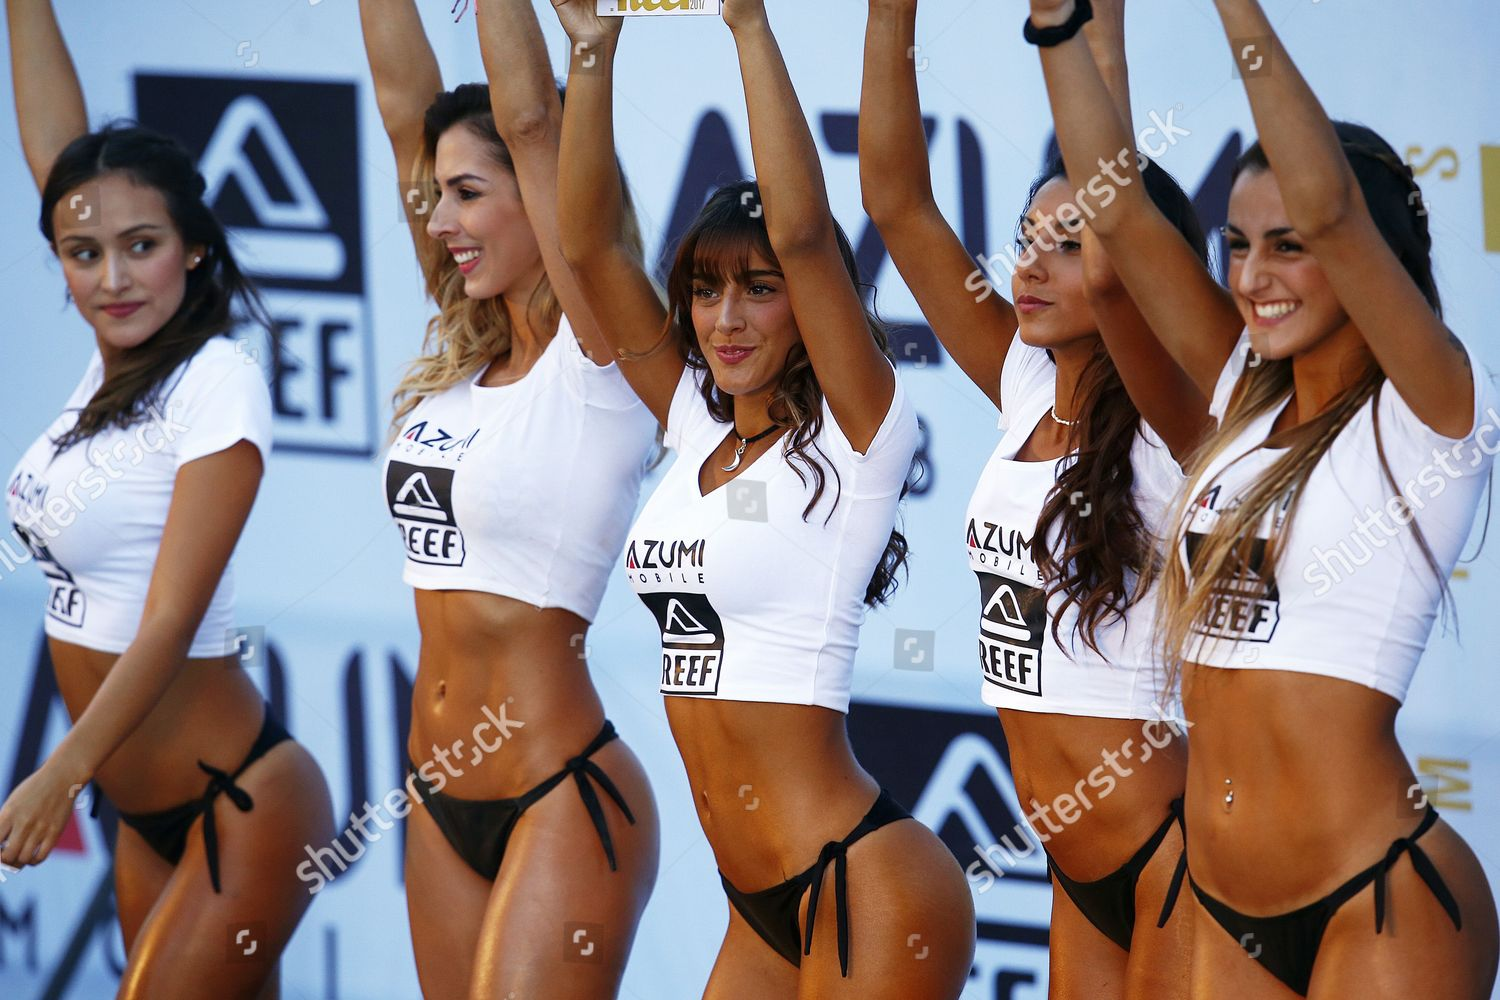 Participants final Miss Reef contest pose during Editorial ...